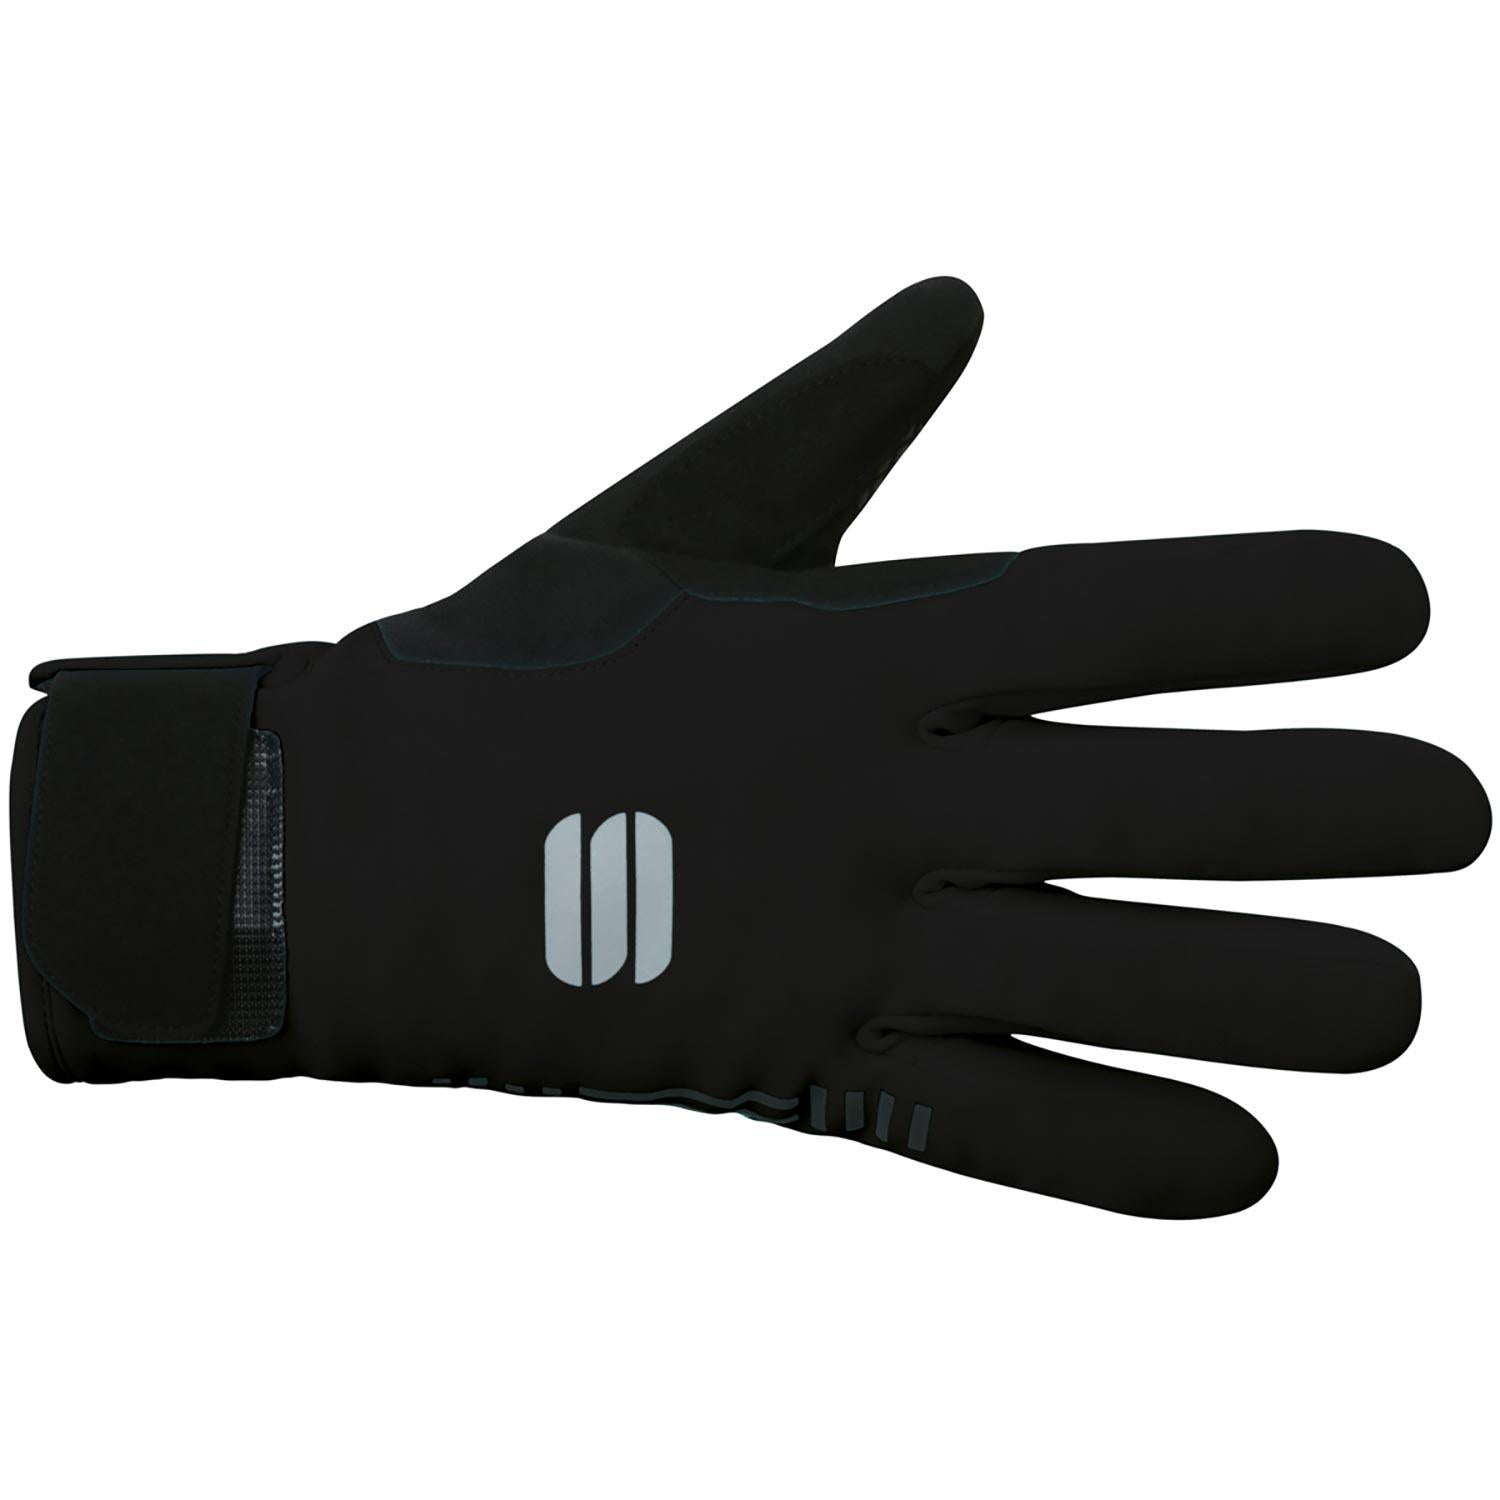 Sportful-Sportful Sottozero Gloves-Black-XS-SF205390021-saddleback-elite-performance-cycling